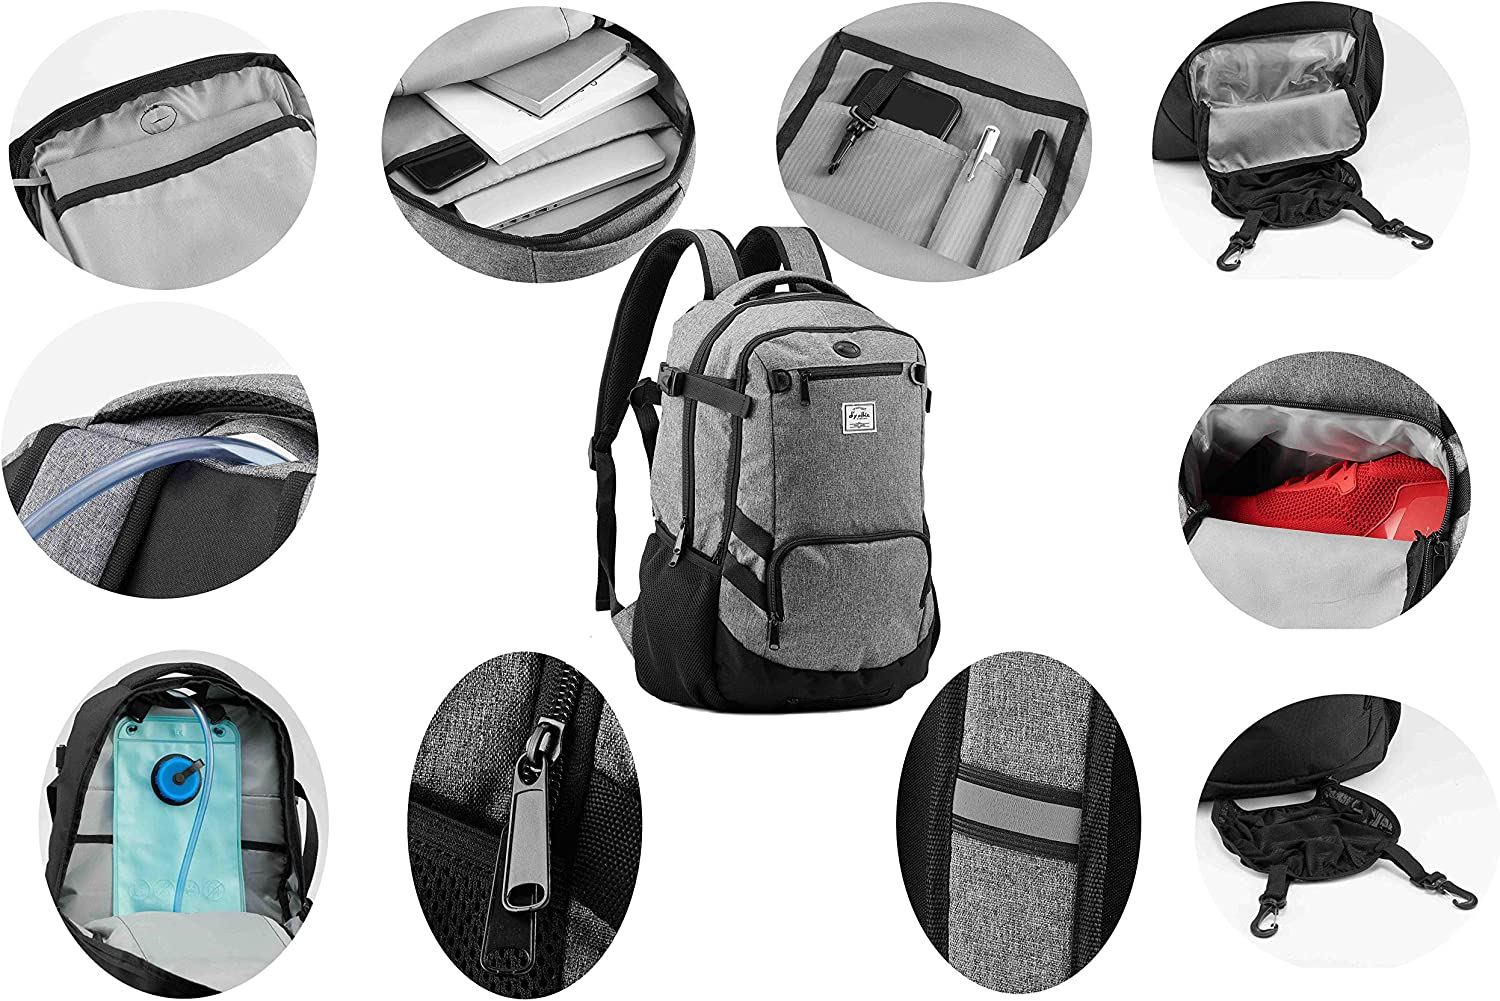 Basketball Backpack for Soccer Volleyball Football with Shoes and Ball Compartment A Gift for Men Women Boys Girls Students Baseball Bag